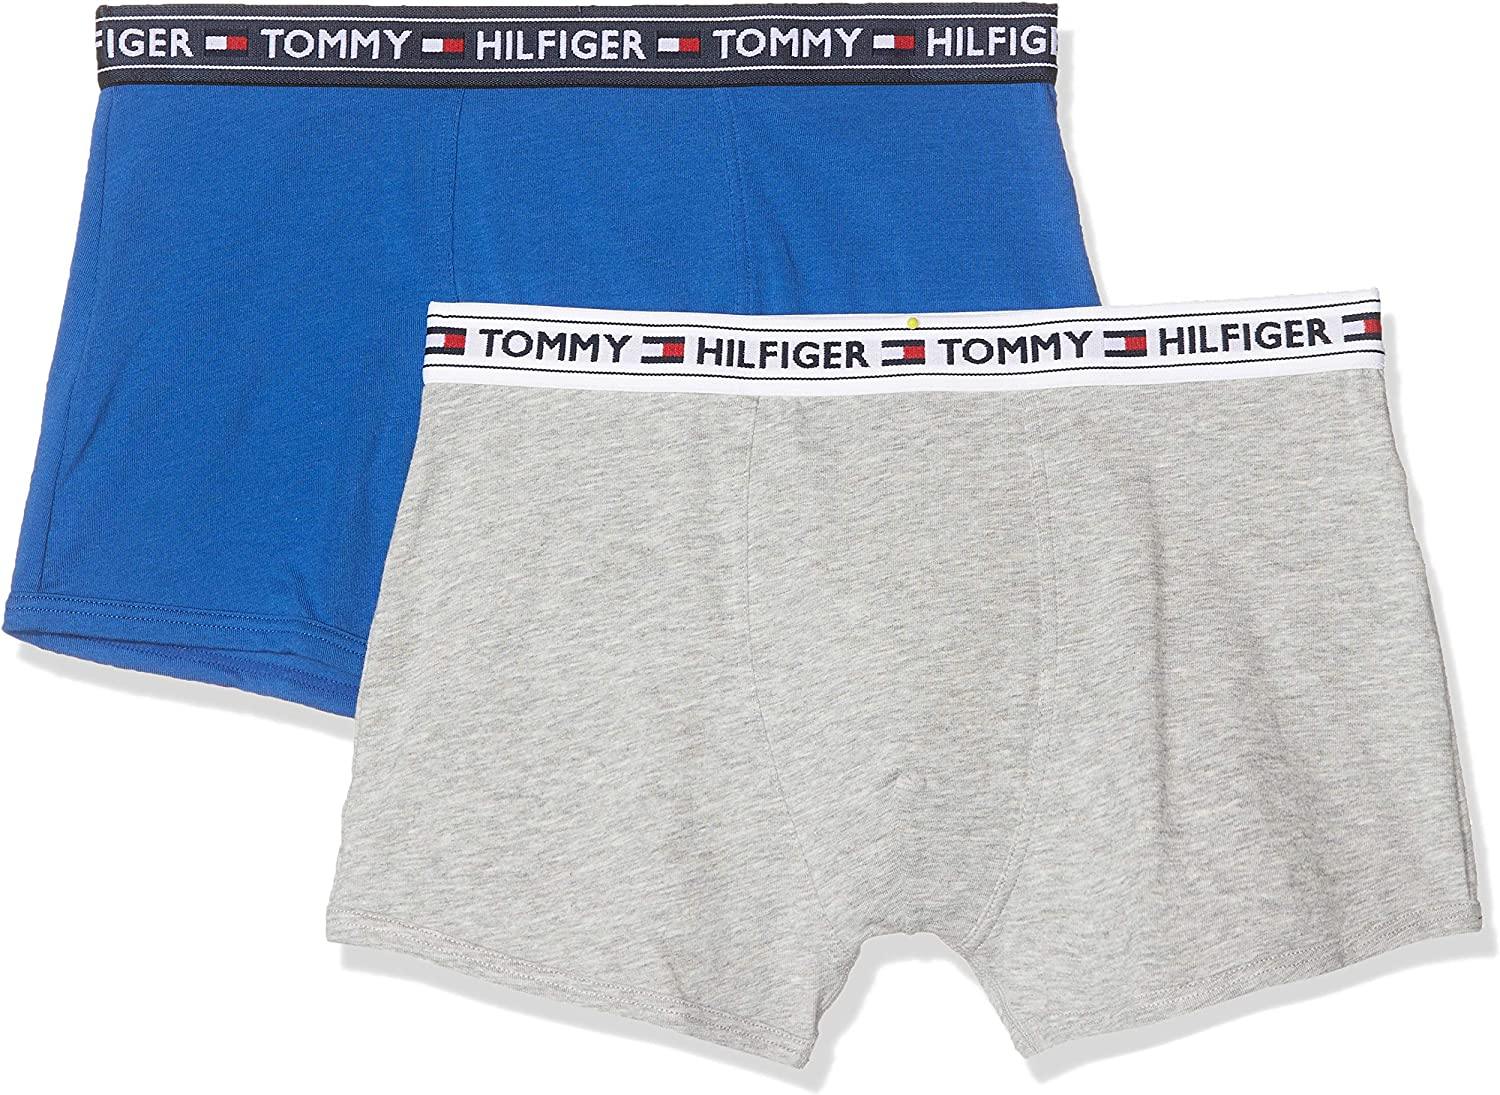 Tommy Hilfiger Boys Boxer Shorts Pack of 2